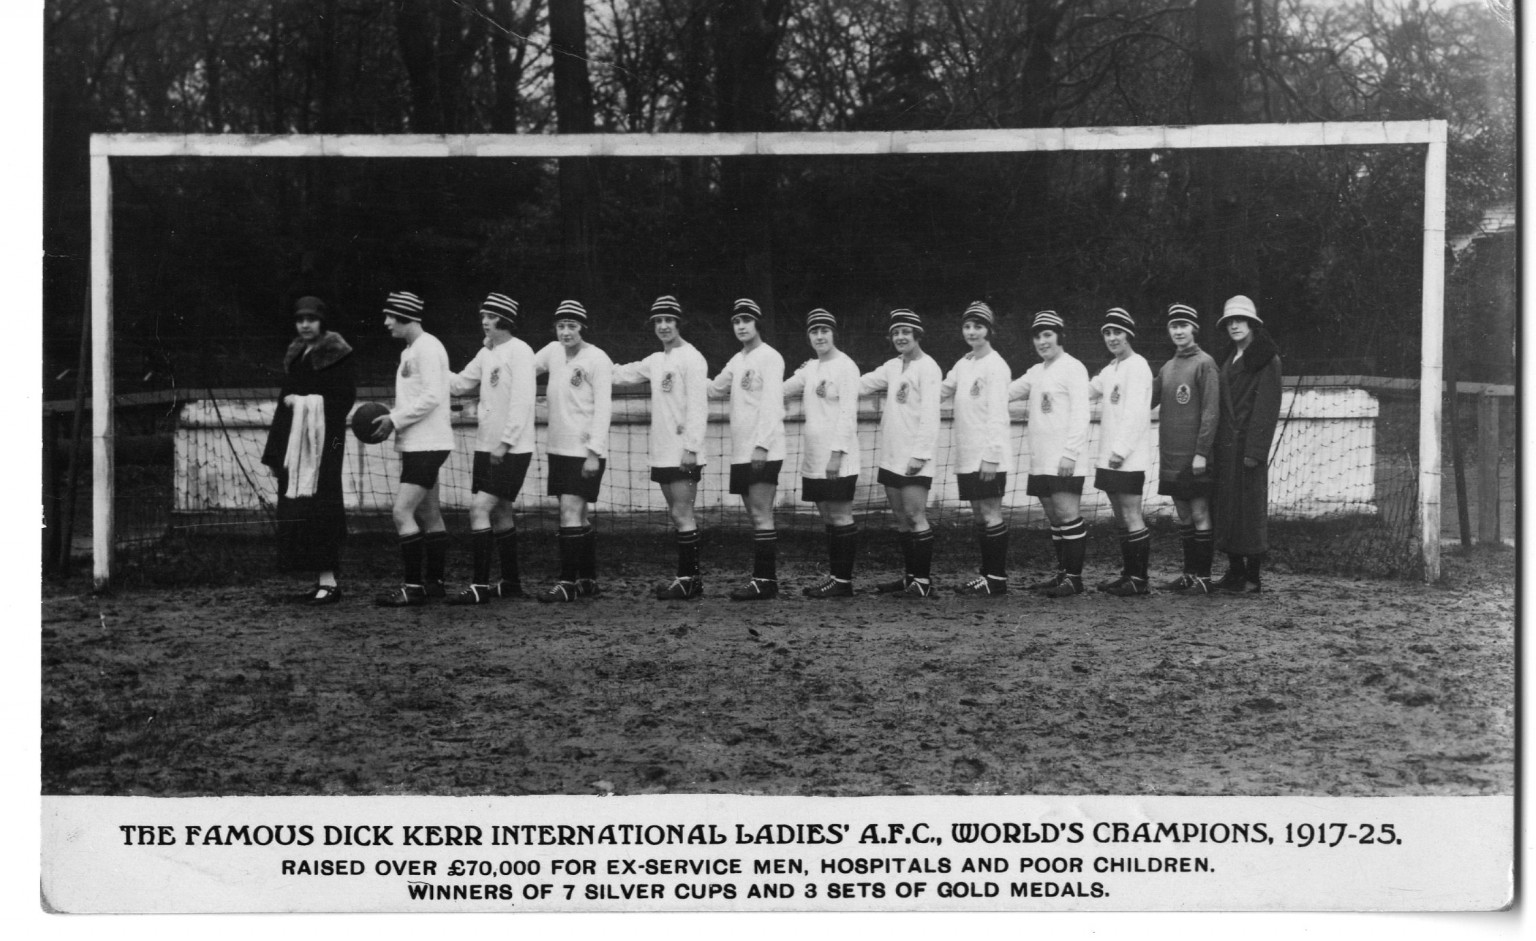 Dick Kerr Ladies, World Champions 1917-25. Lily Parr is holding the football.